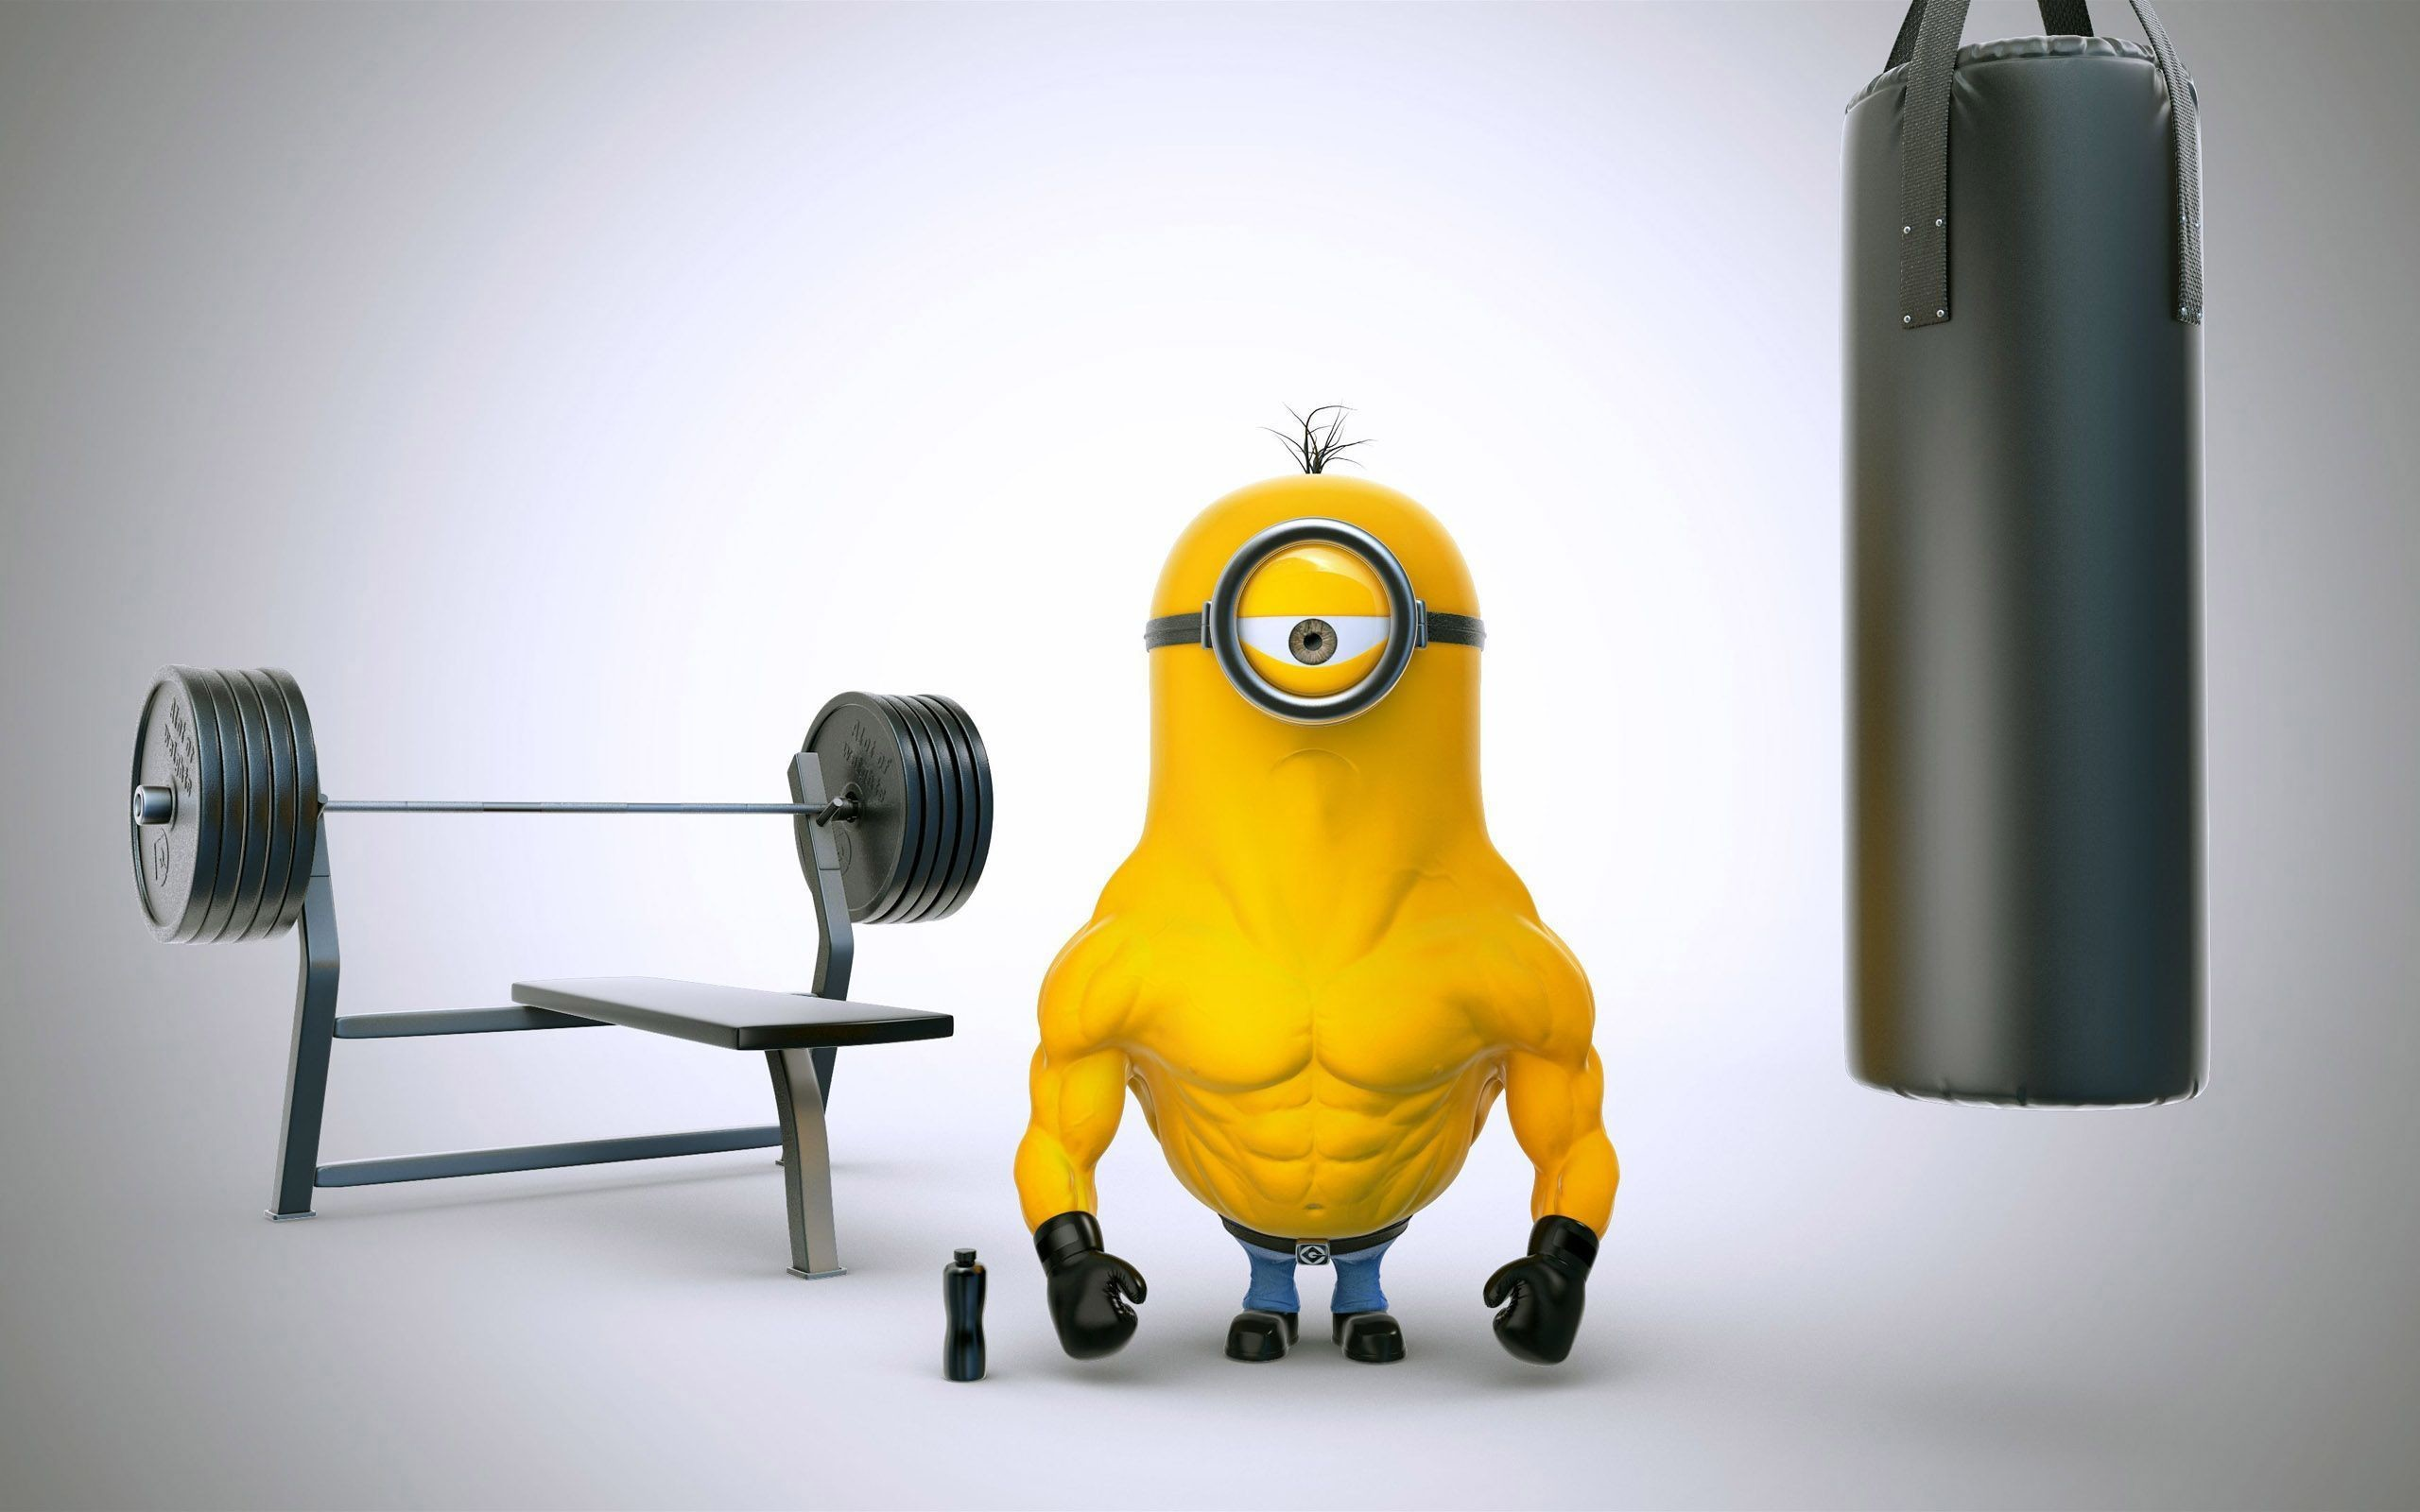 Res: 2560x1600, Minion Wallpapers - Full HD wallpaper search